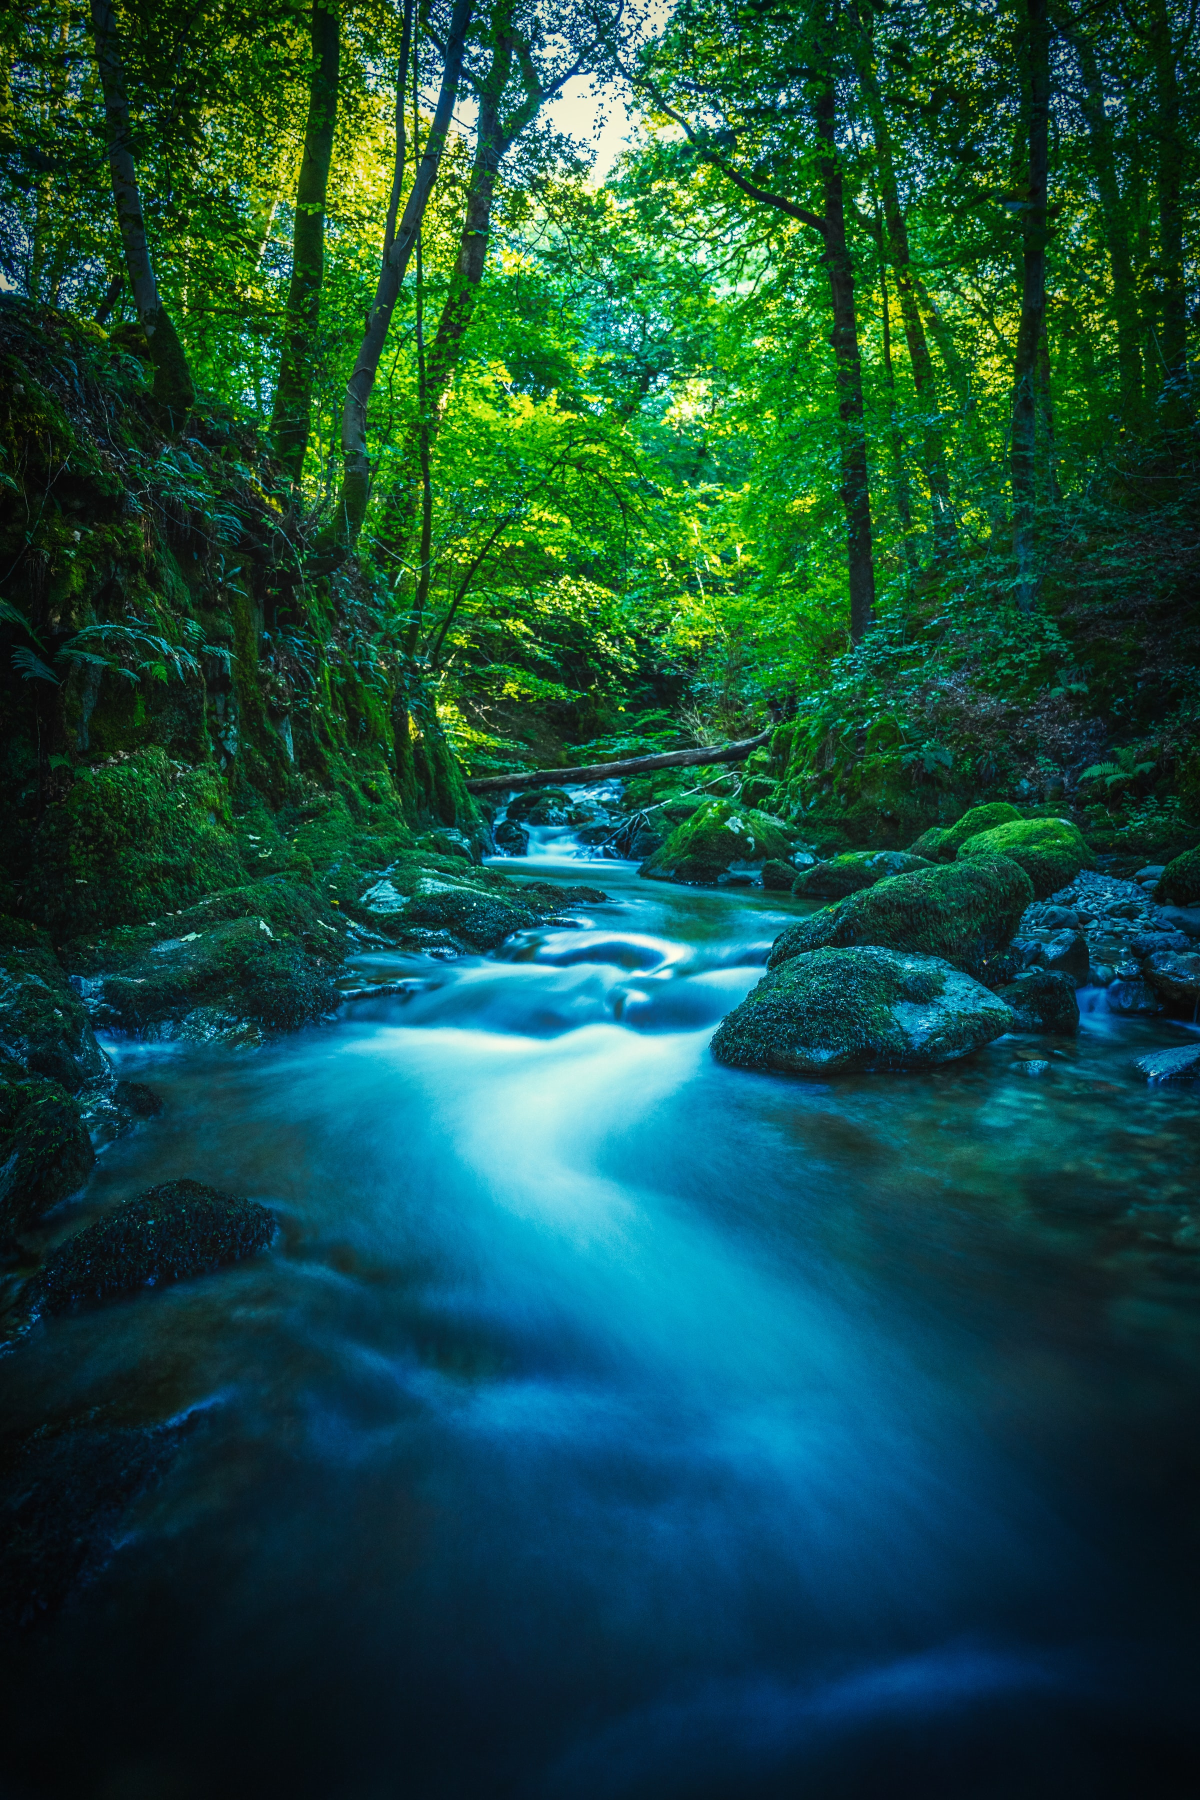 blue stream in forest